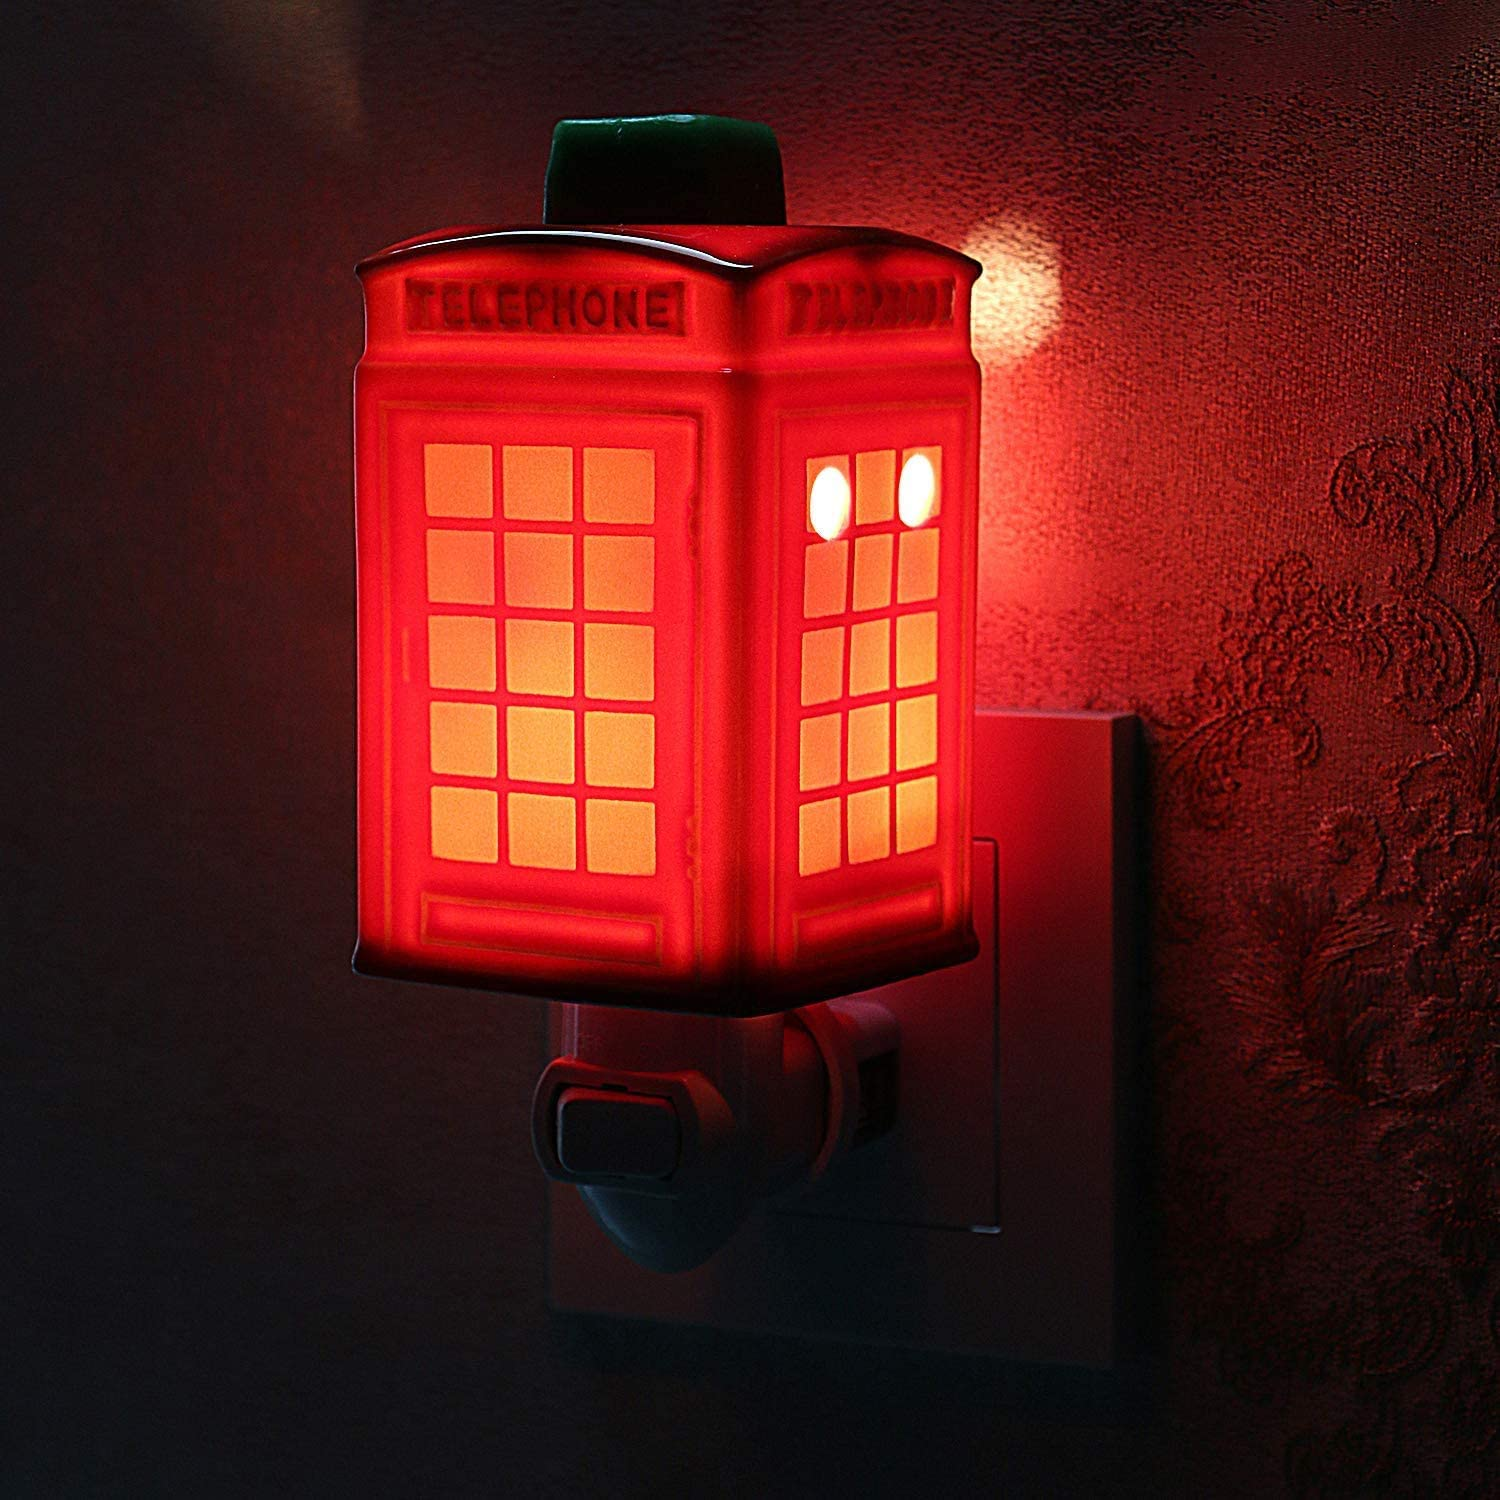 STAR MOON Pluggable Fragrance Warmer Wax Melter for Christmas Decoration in Home/Dorm/Office No Flame No Smoke No Soot Packaged Together with Two Bulbs - Classic Red Telephone Kiosk